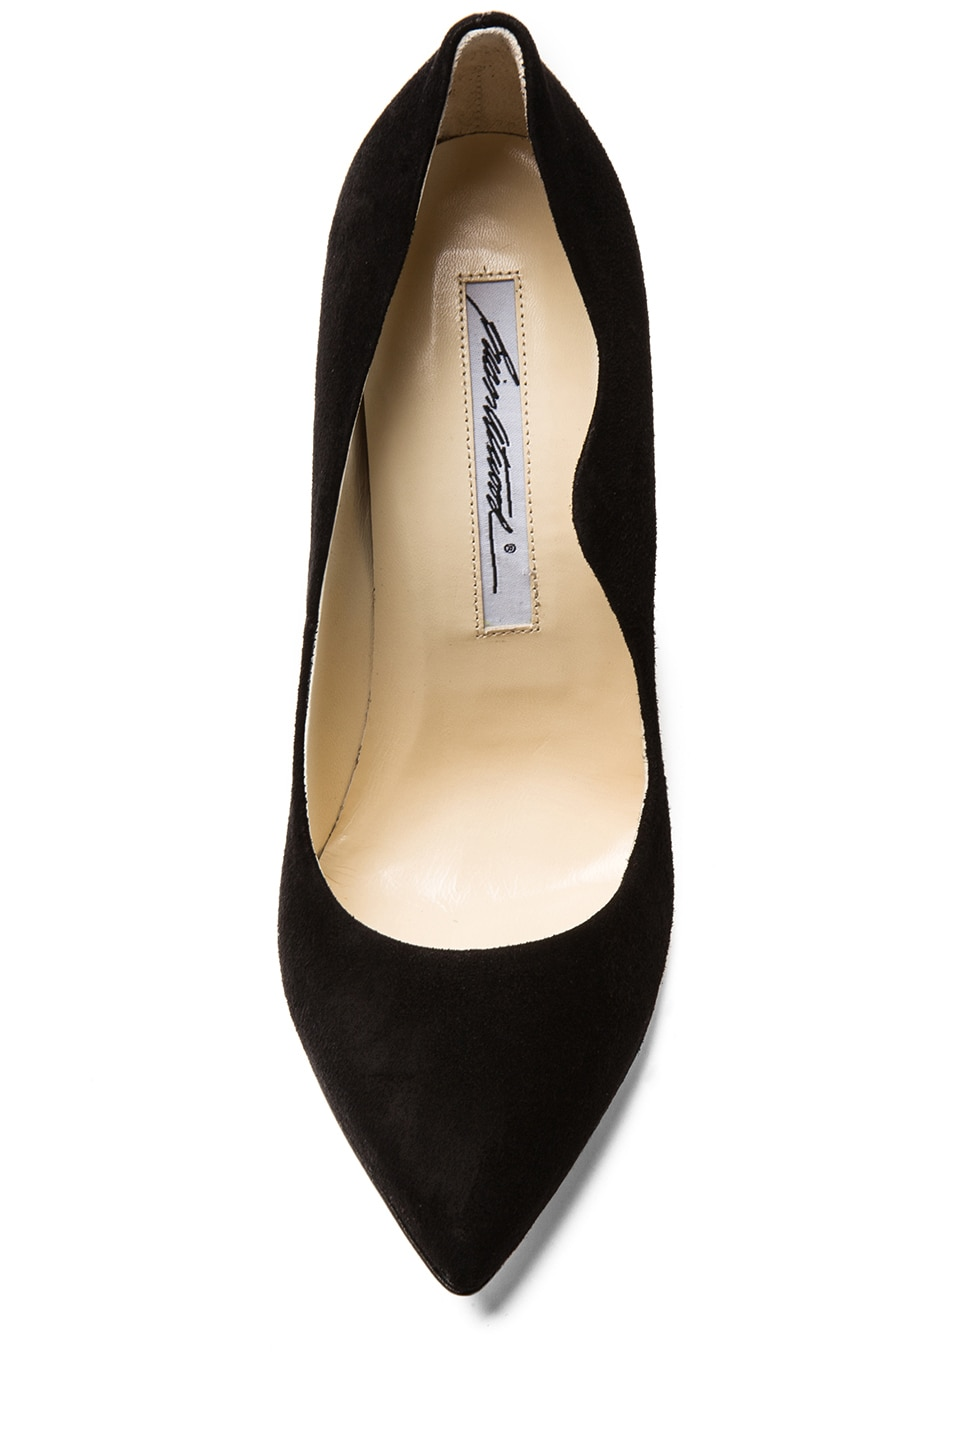 Image 4 of Brian Atwood Besame Suede Pumps in Black Suede